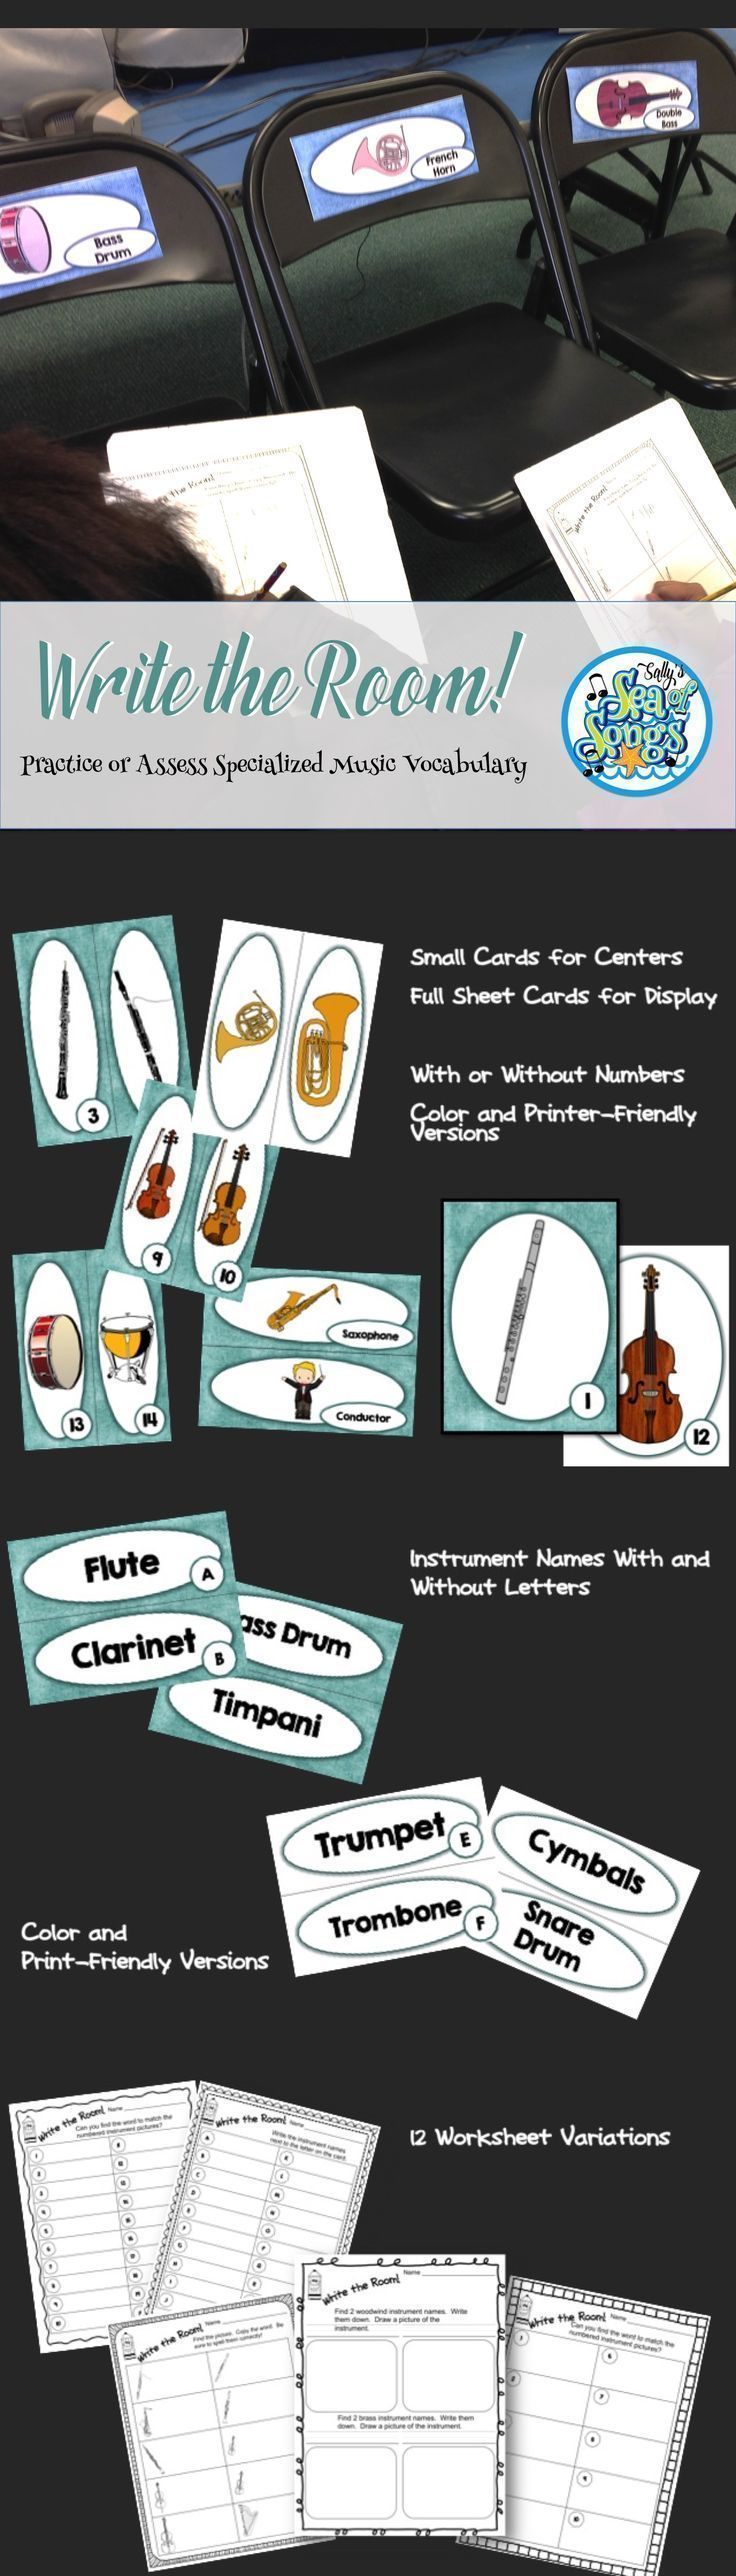 A set 20 orchestral instruments and their name labels, formatted in various ways to allow for a variety of options! Instrument cards with labels may be displayed as a permanent part of your music room decor. Use small cards in a center or large cards for